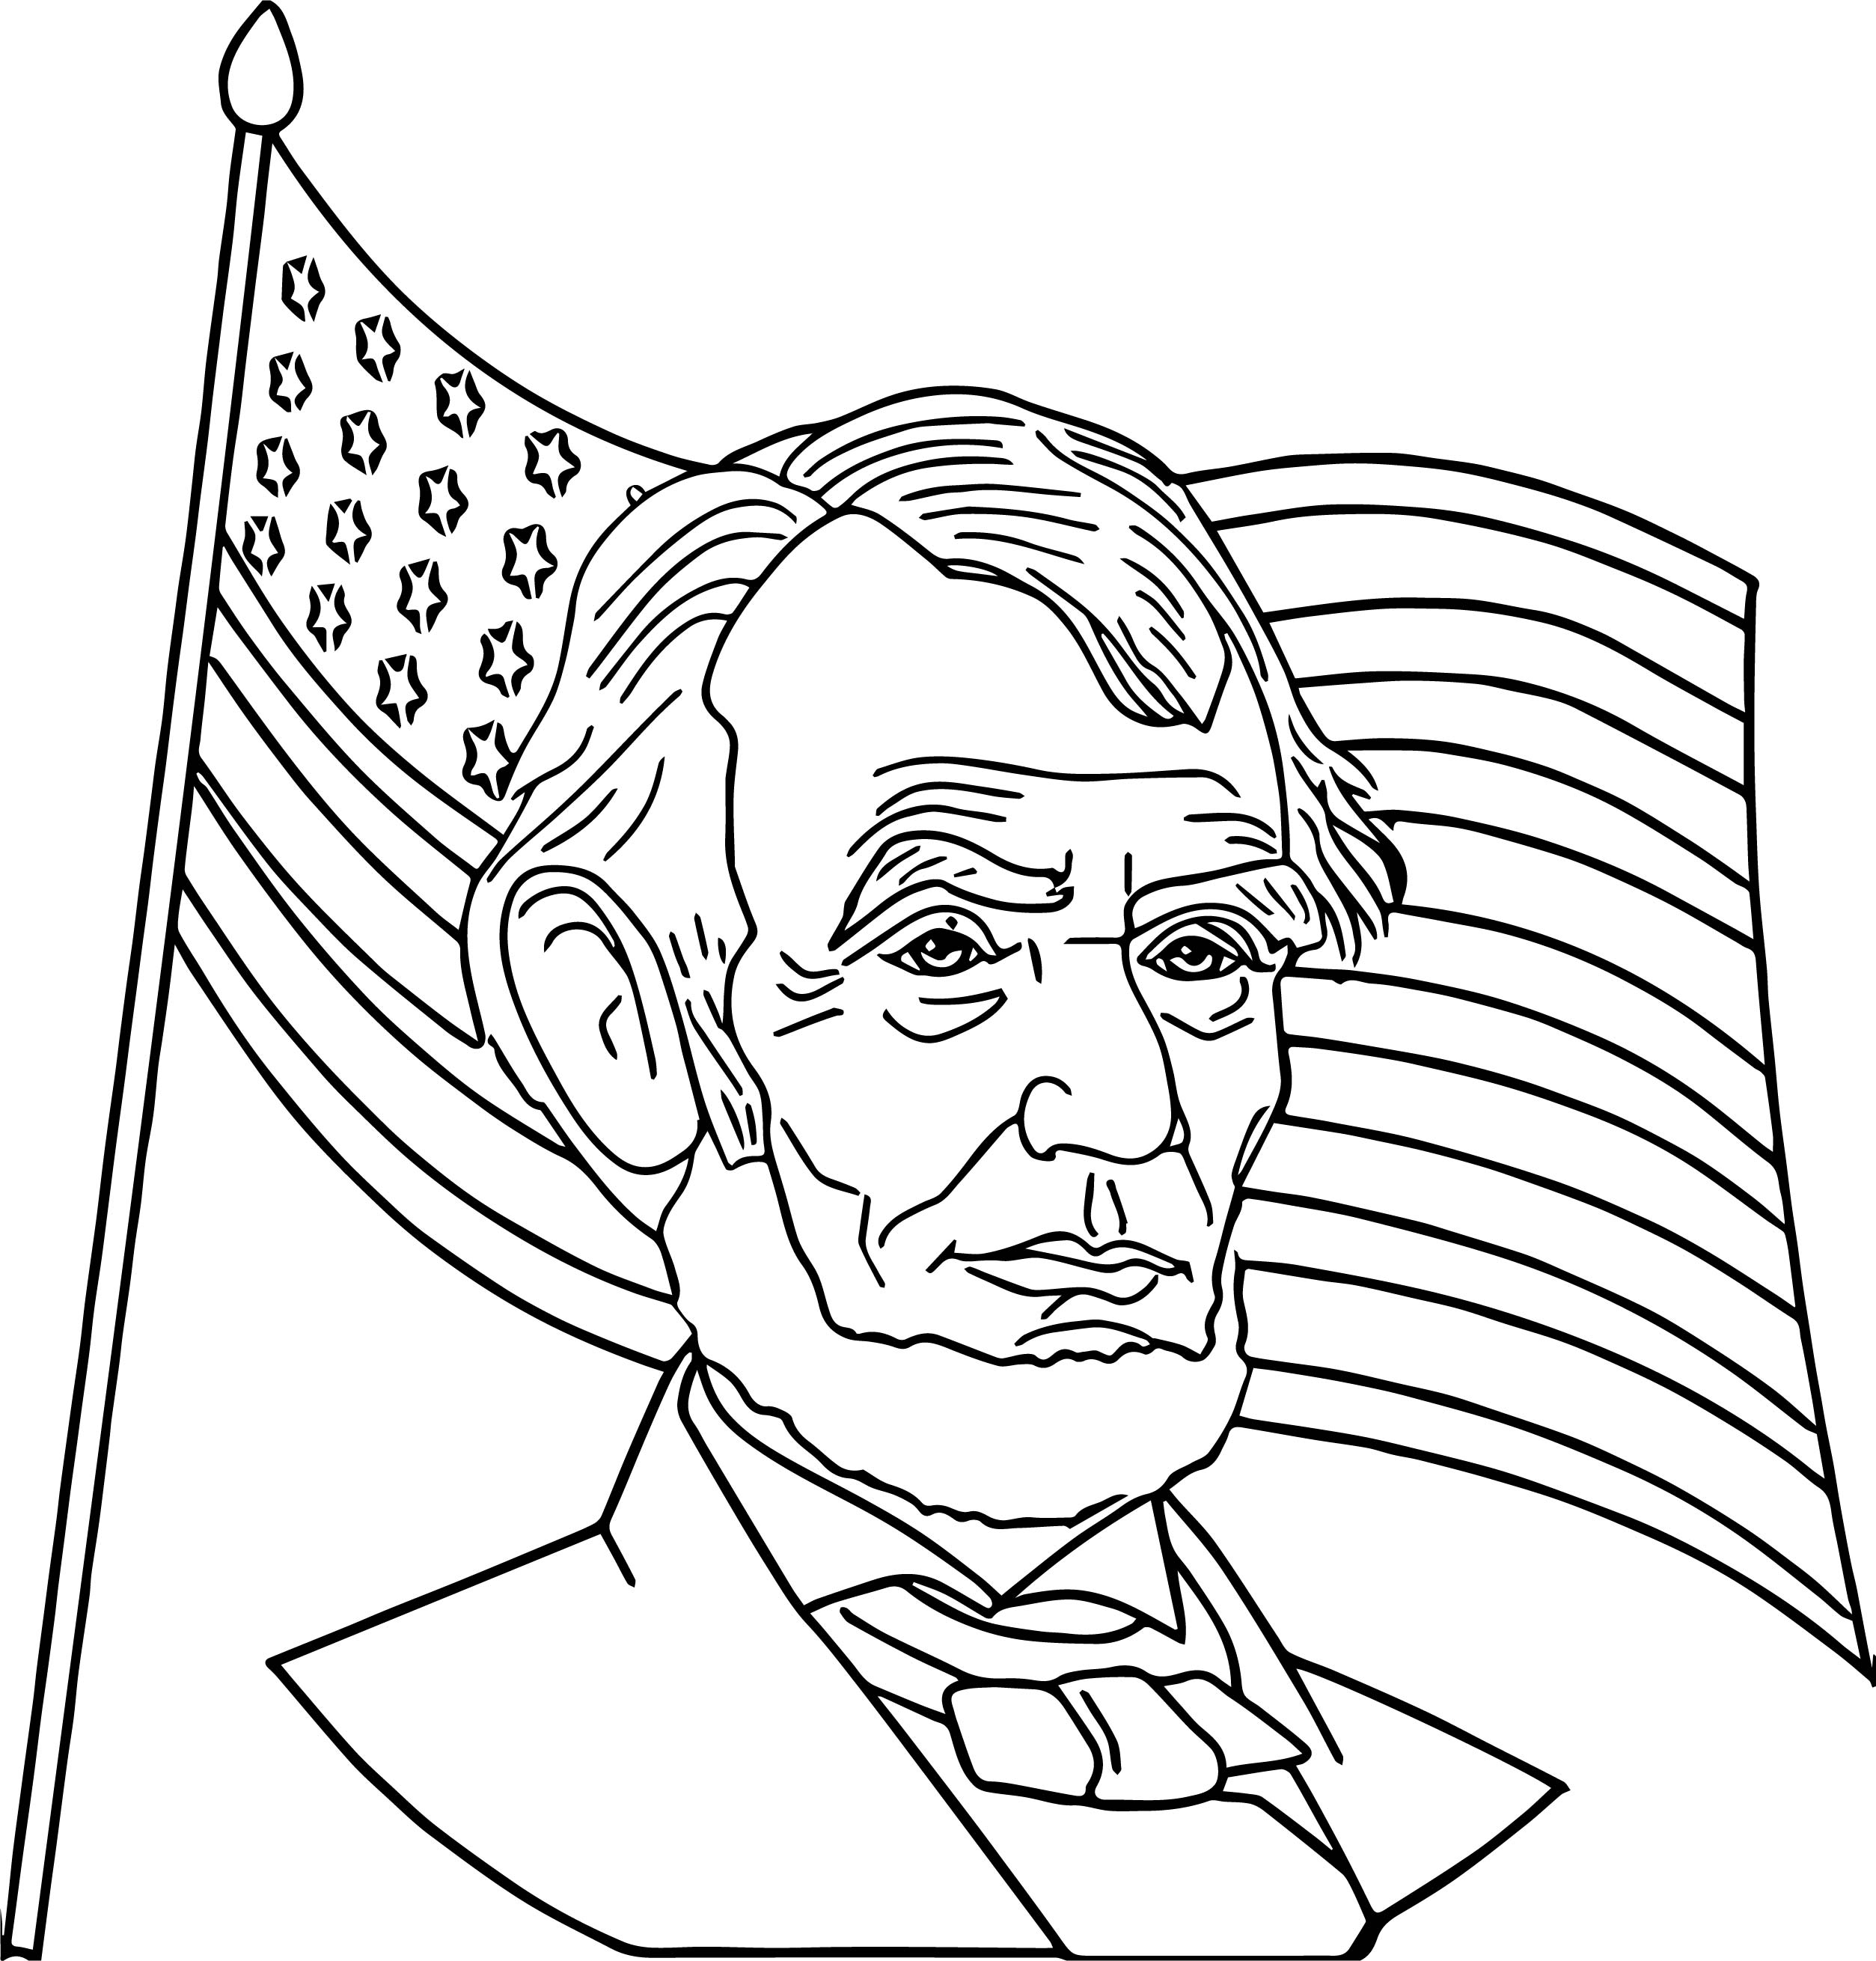 coloring pages of cabins 800561 in 2020 coloring pages log cabin shade coloring cabins of pages